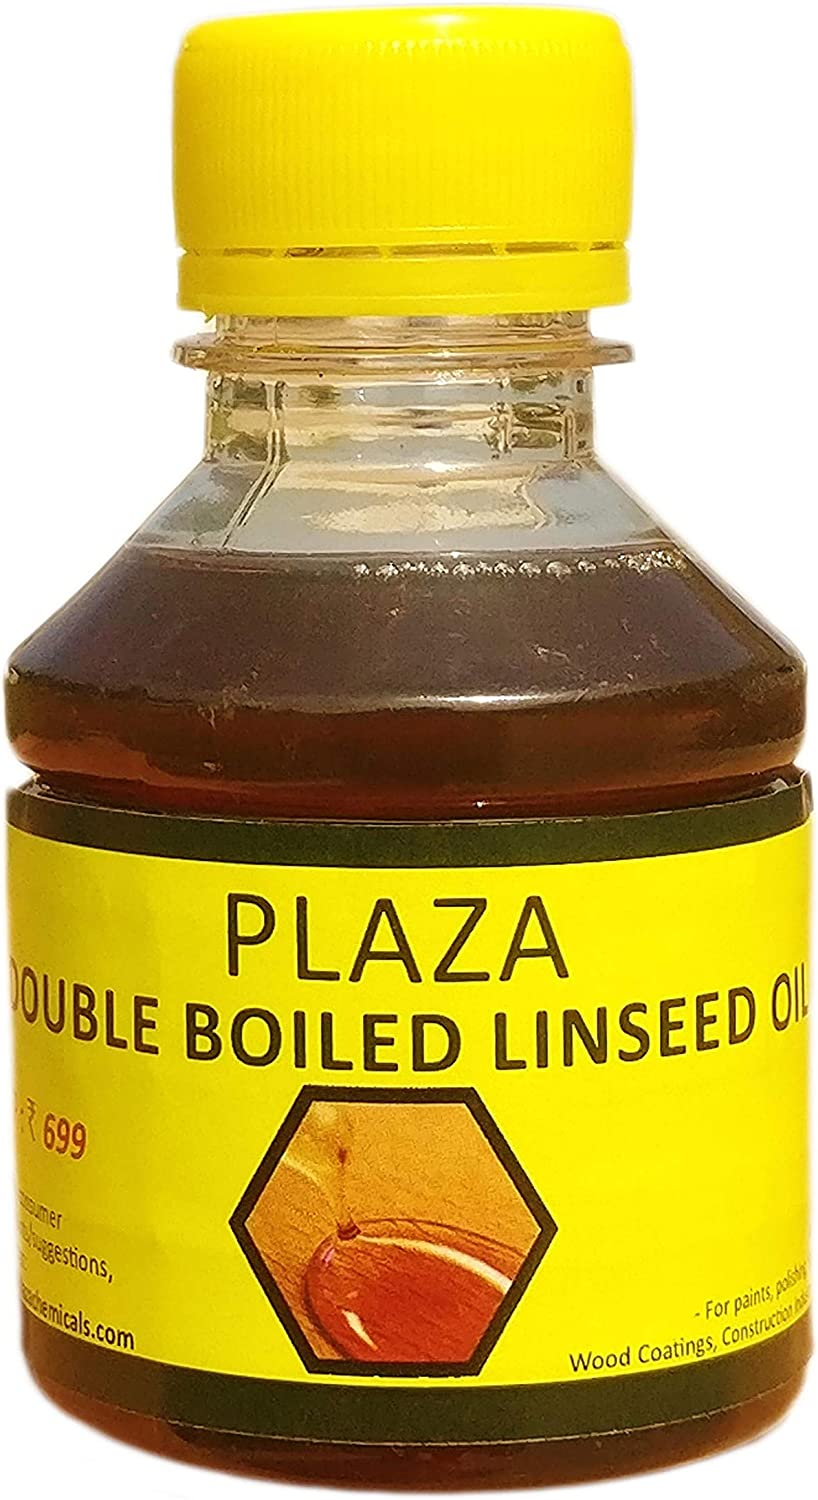 PLAZA - Double Boiled Linseed Oil - 100 ml Pack used for Wood Finishing, On Walls before applying paint, mixing in putty, bare wooden furniture, outside wooden furniture, Cricket bats, hockey, guitar,